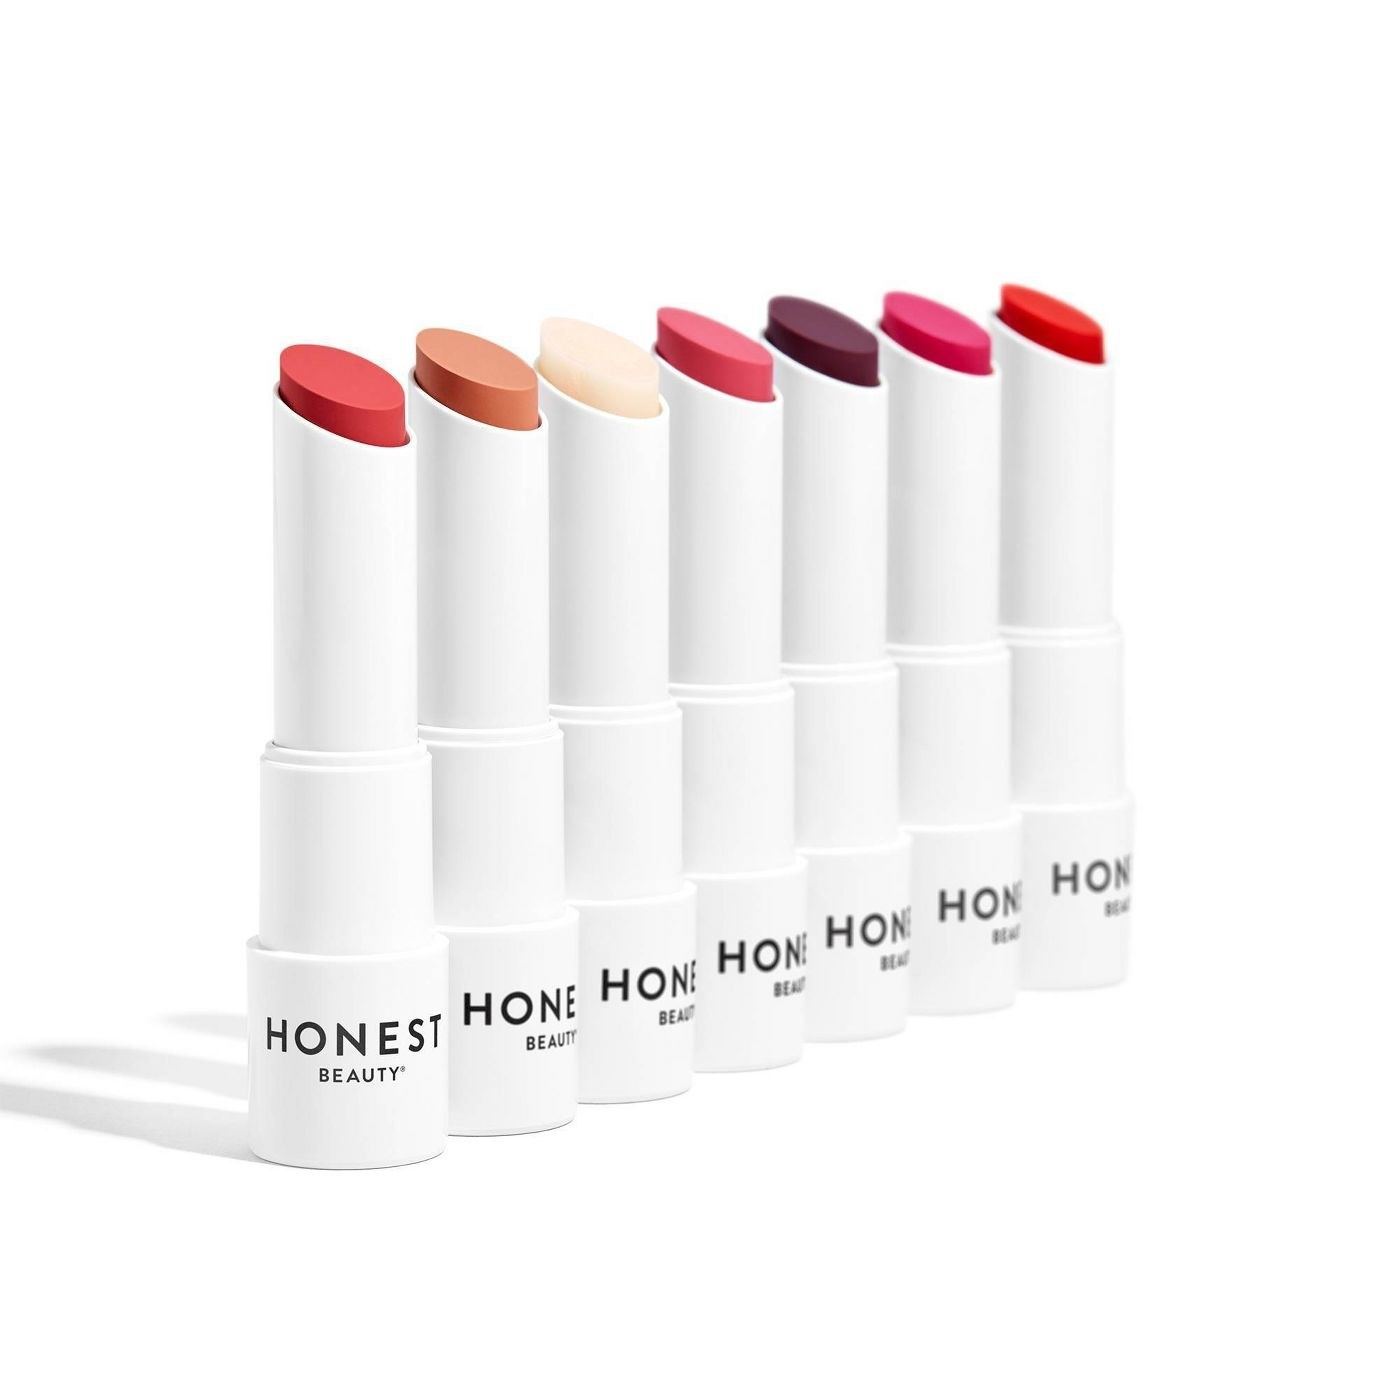 Seven tubes of tinted lip balm lined up